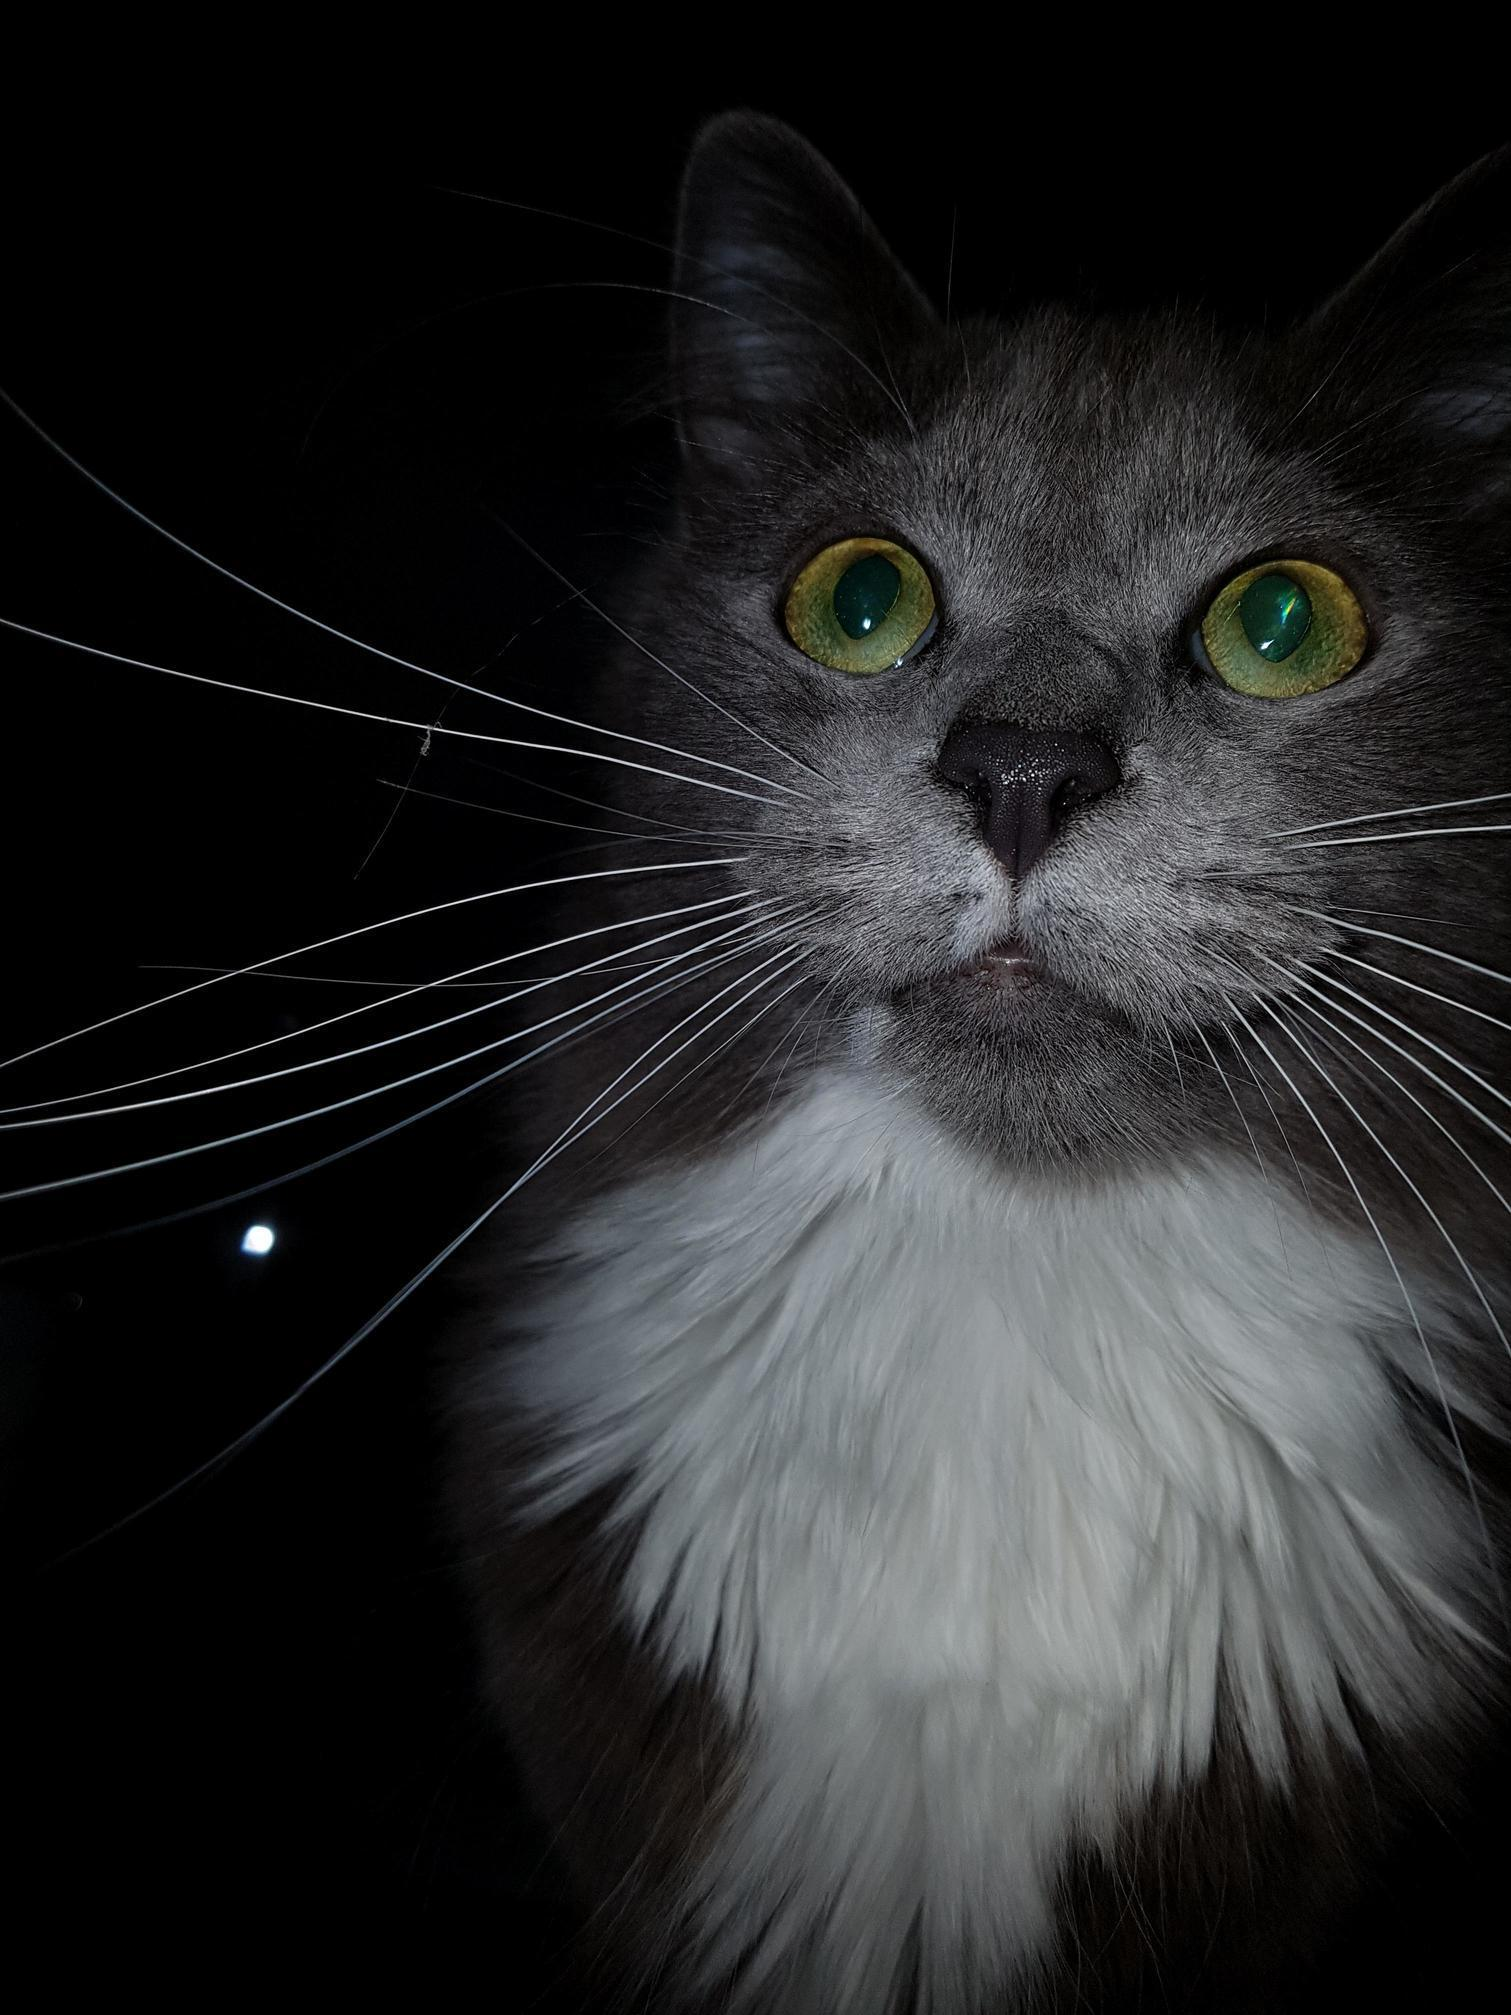 Forgot the flash was on and stunned him 